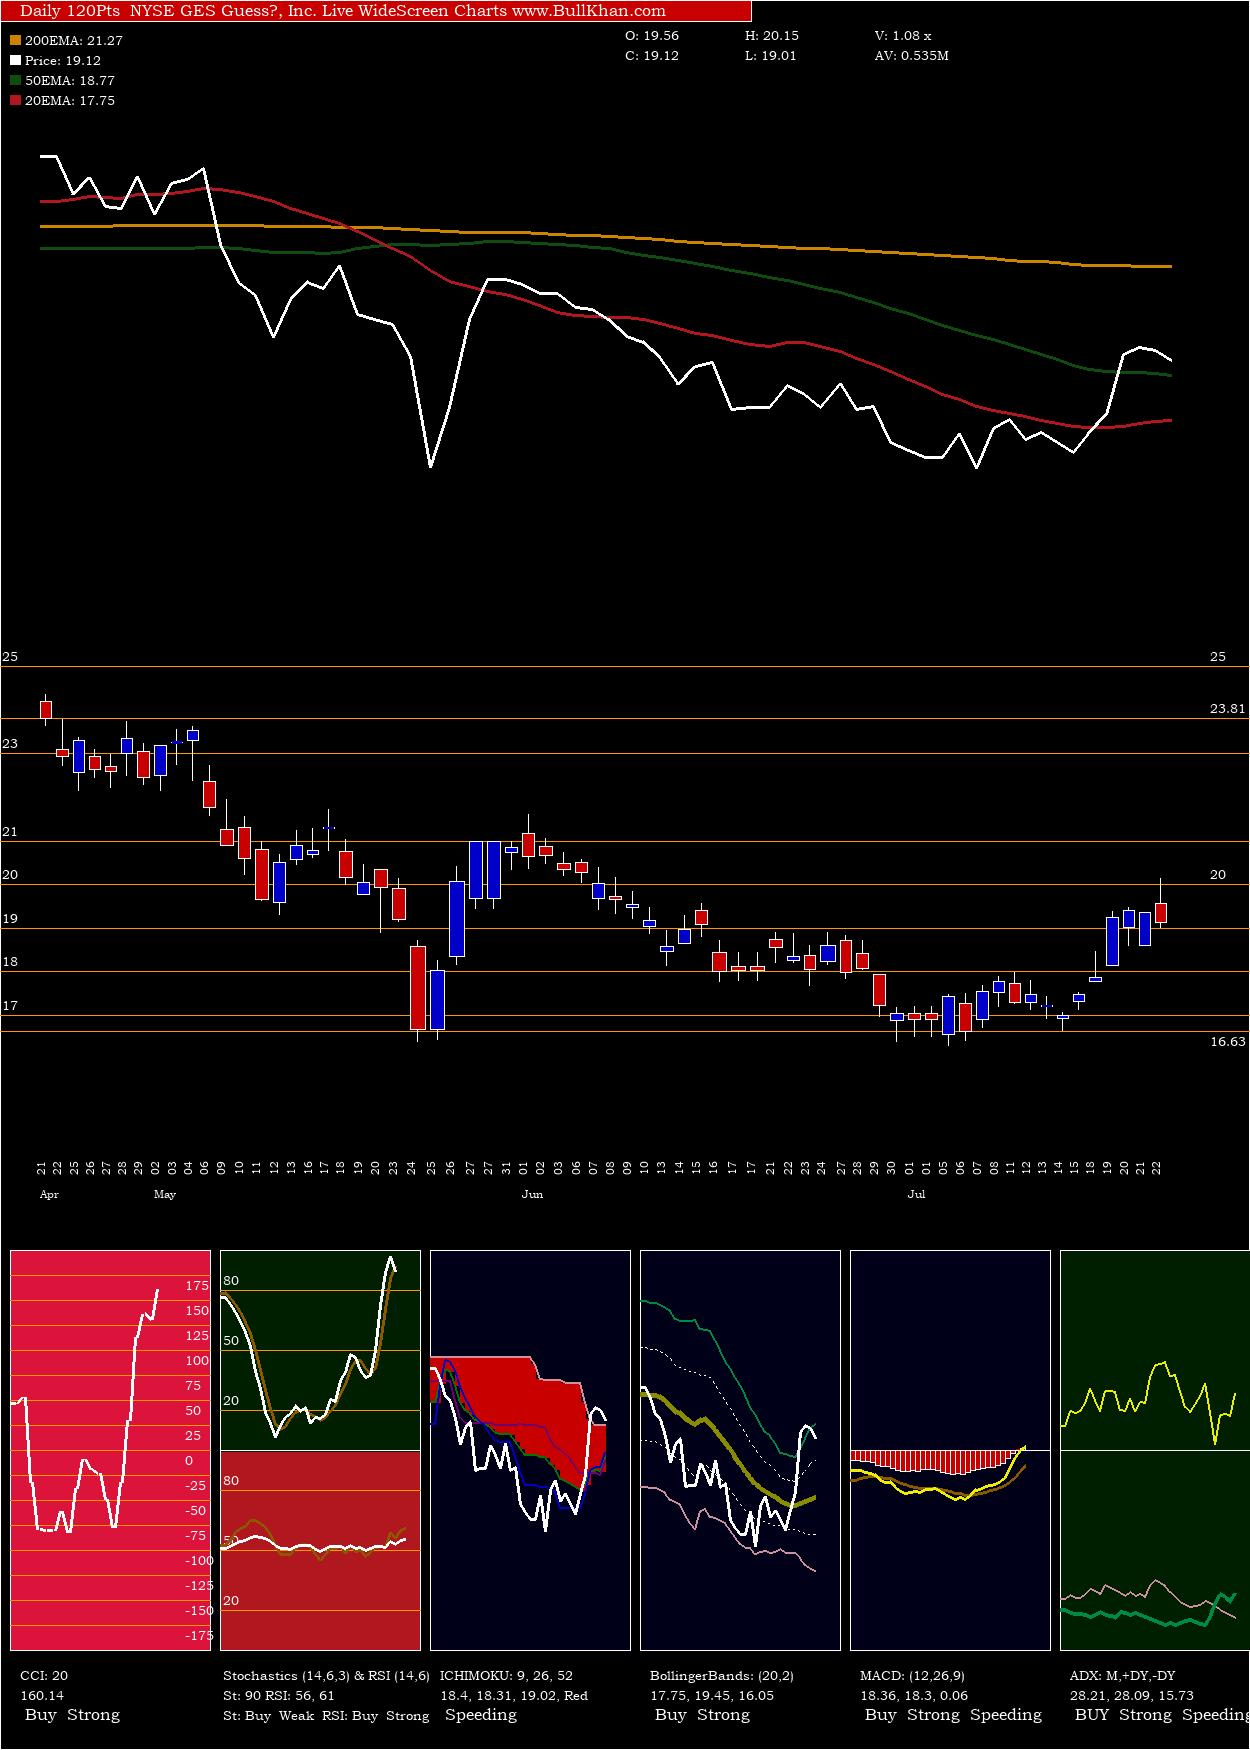 Guess Inc charts and indicators